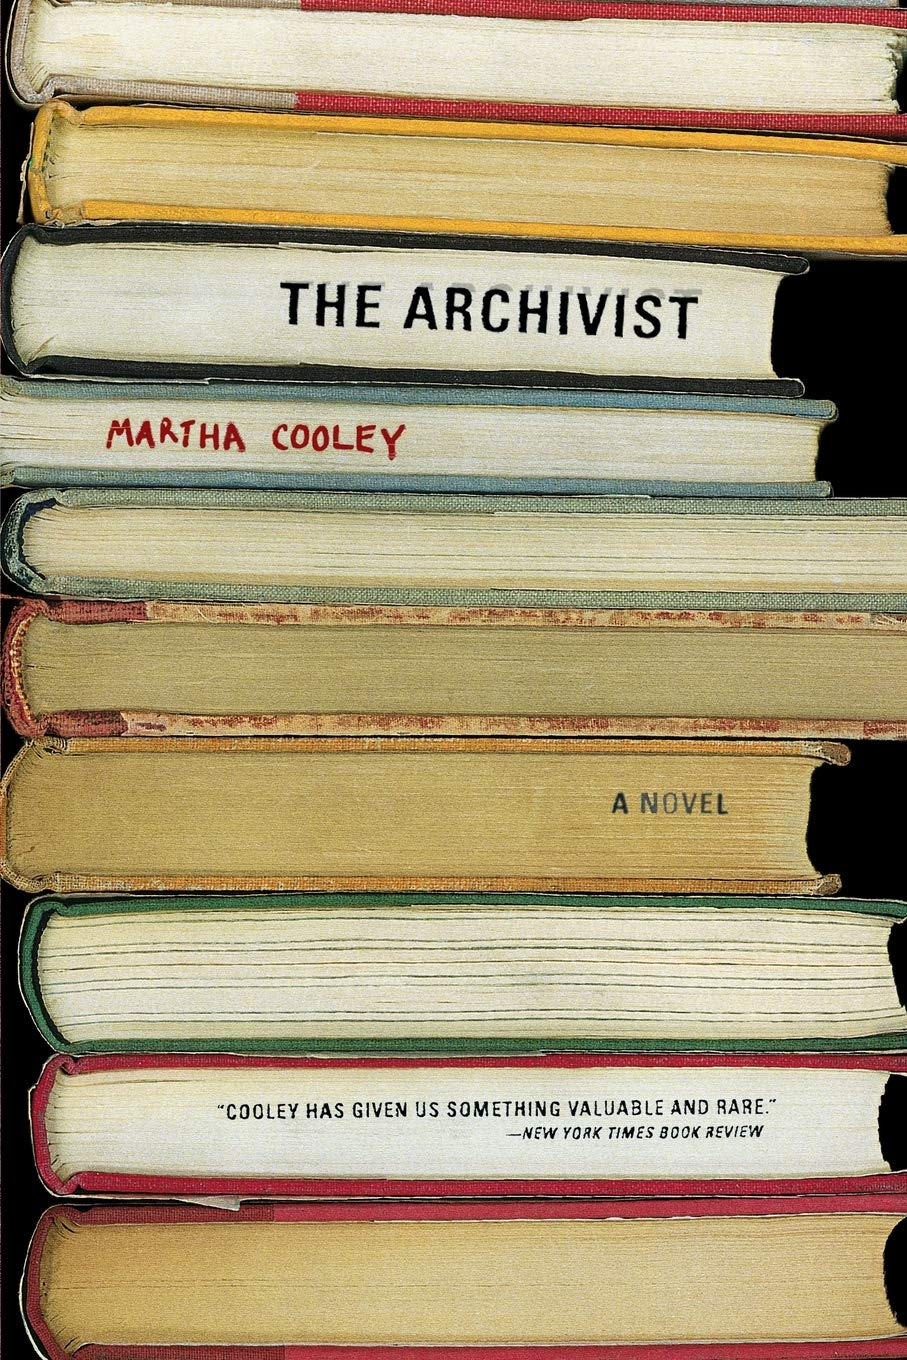 The Archivist by Martha Cooley